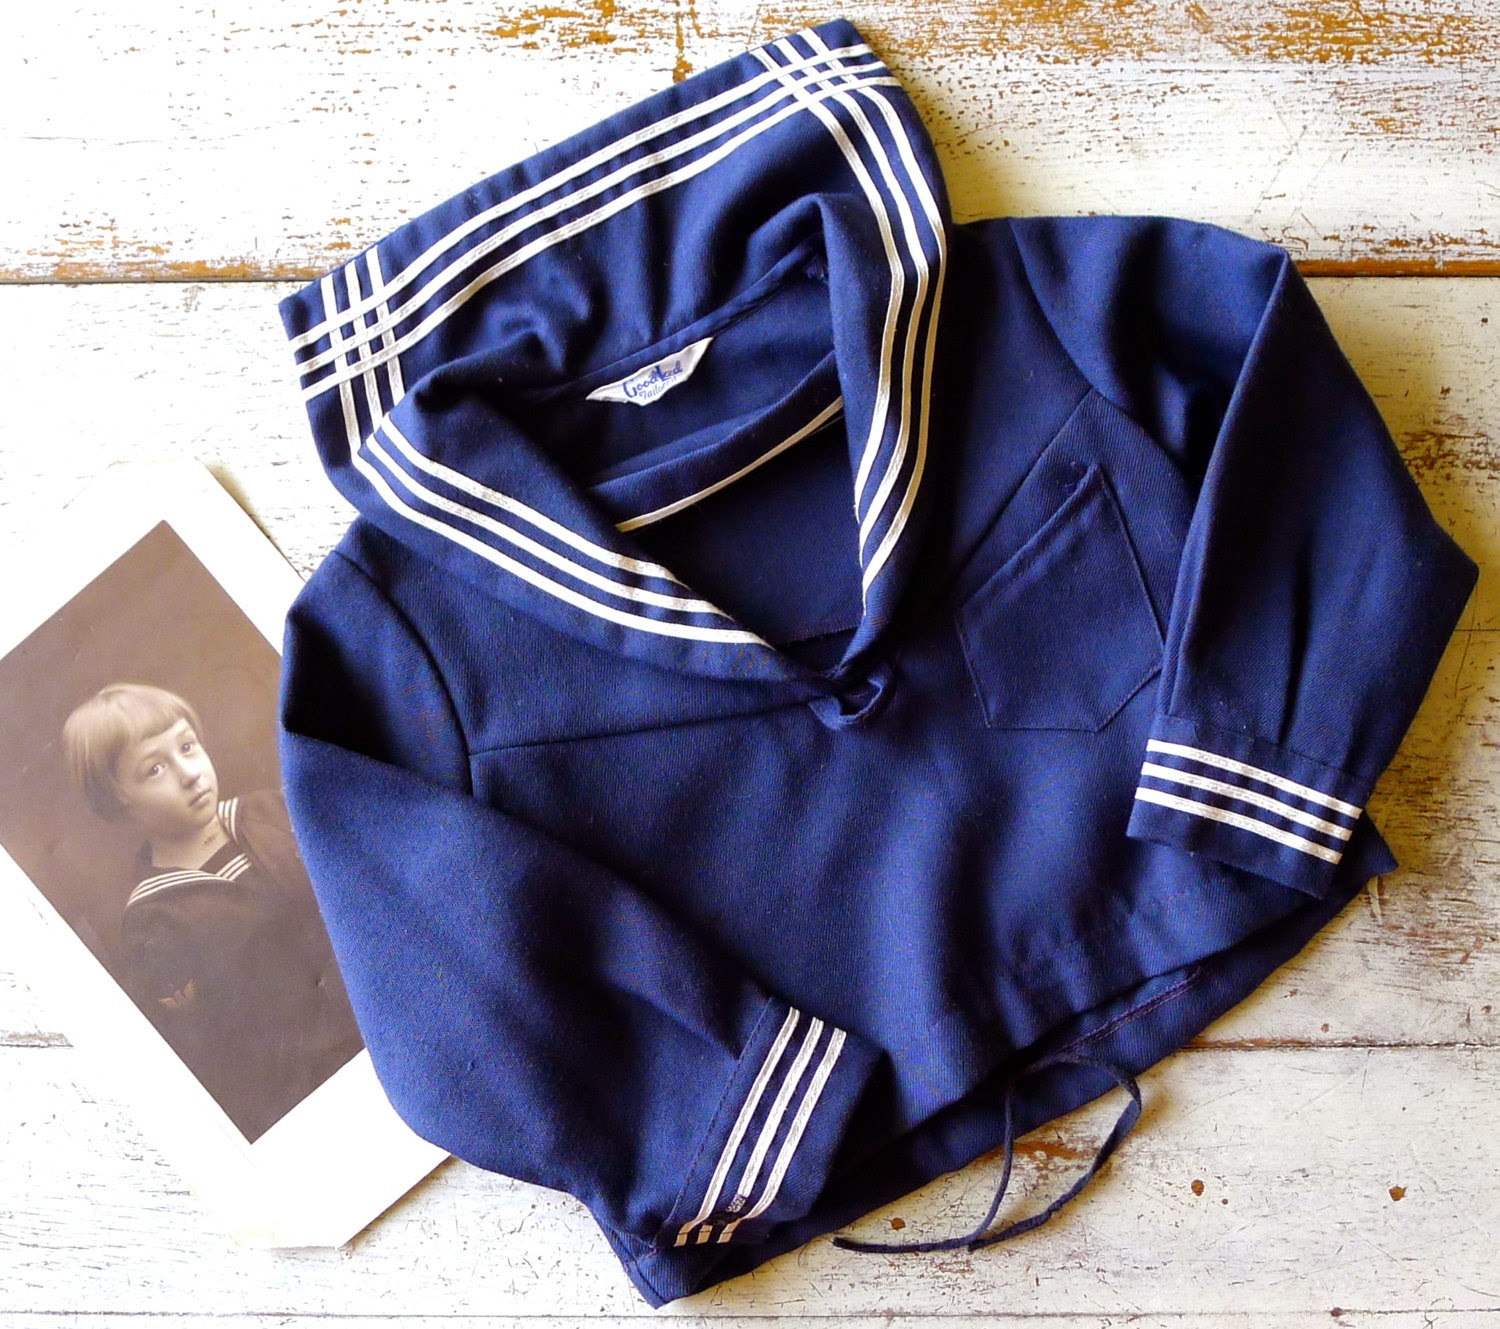 https://www.etsy.com/listing/227314700/1940s-good-lad-sailor-top